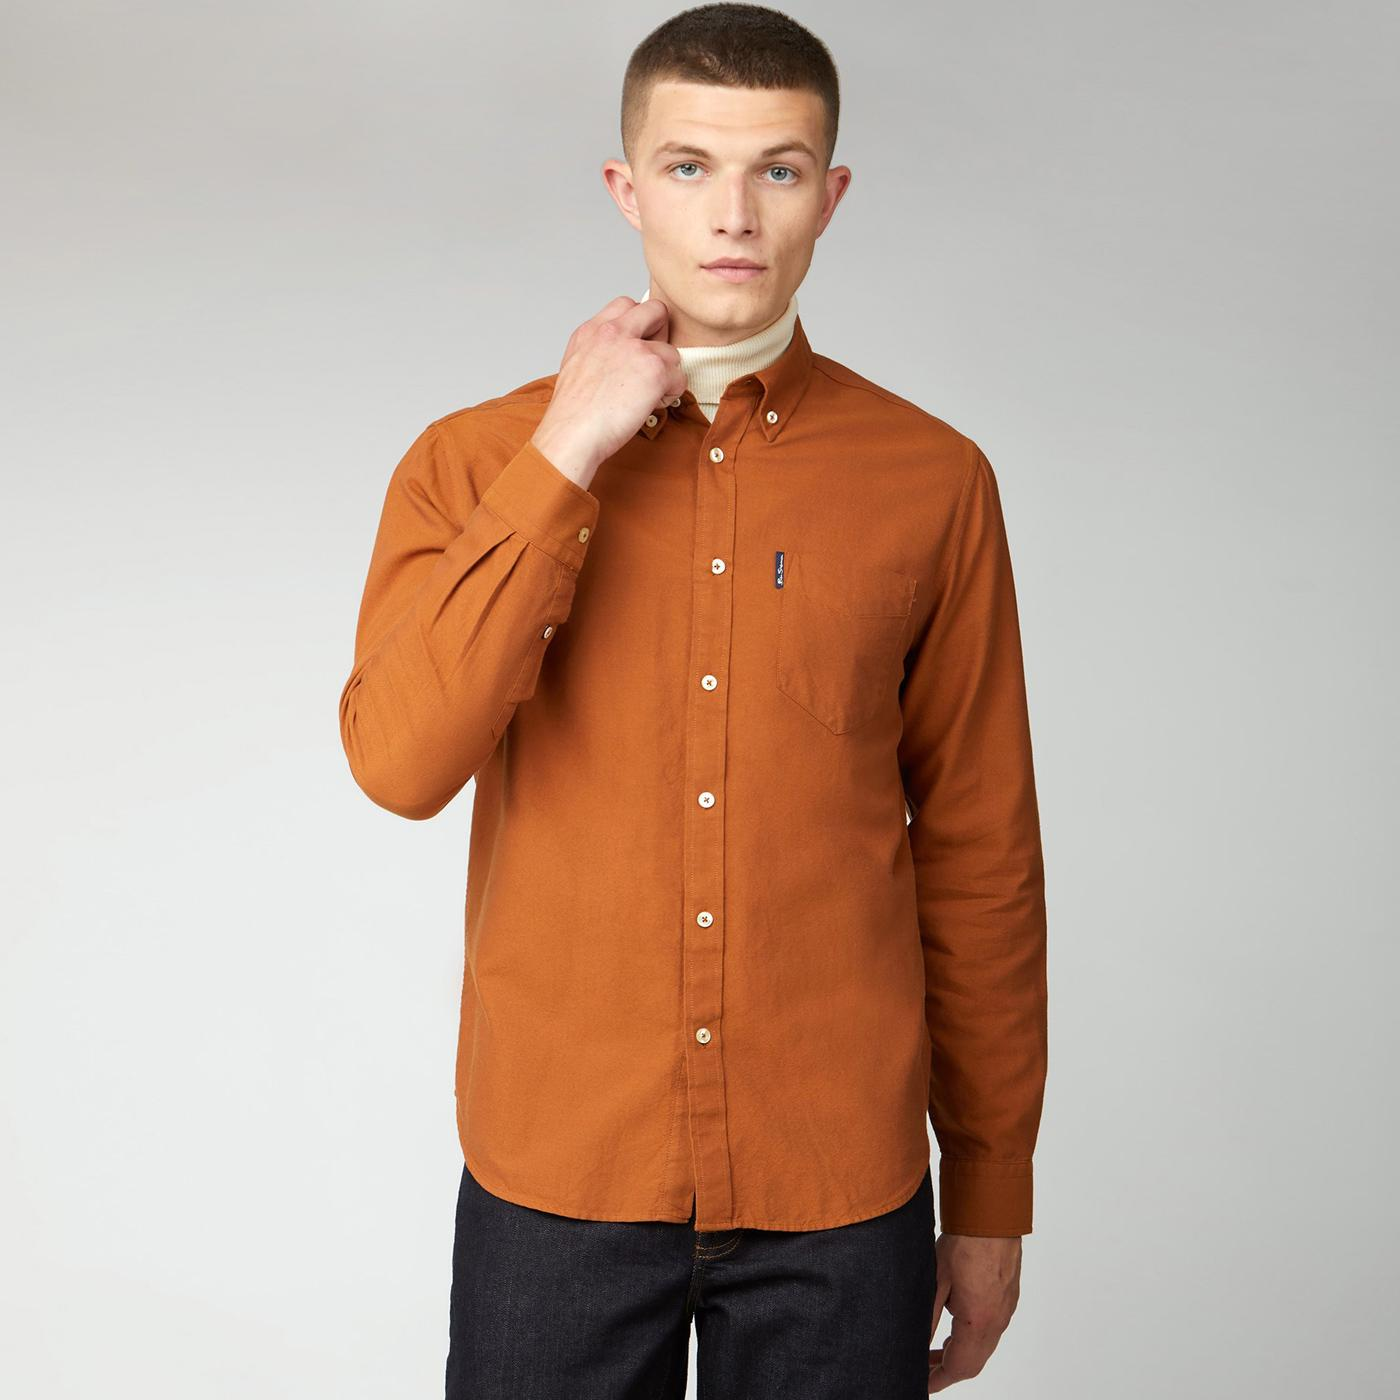 BEN SHERMAN Mod Button Down Oxford Shirt (Gold)